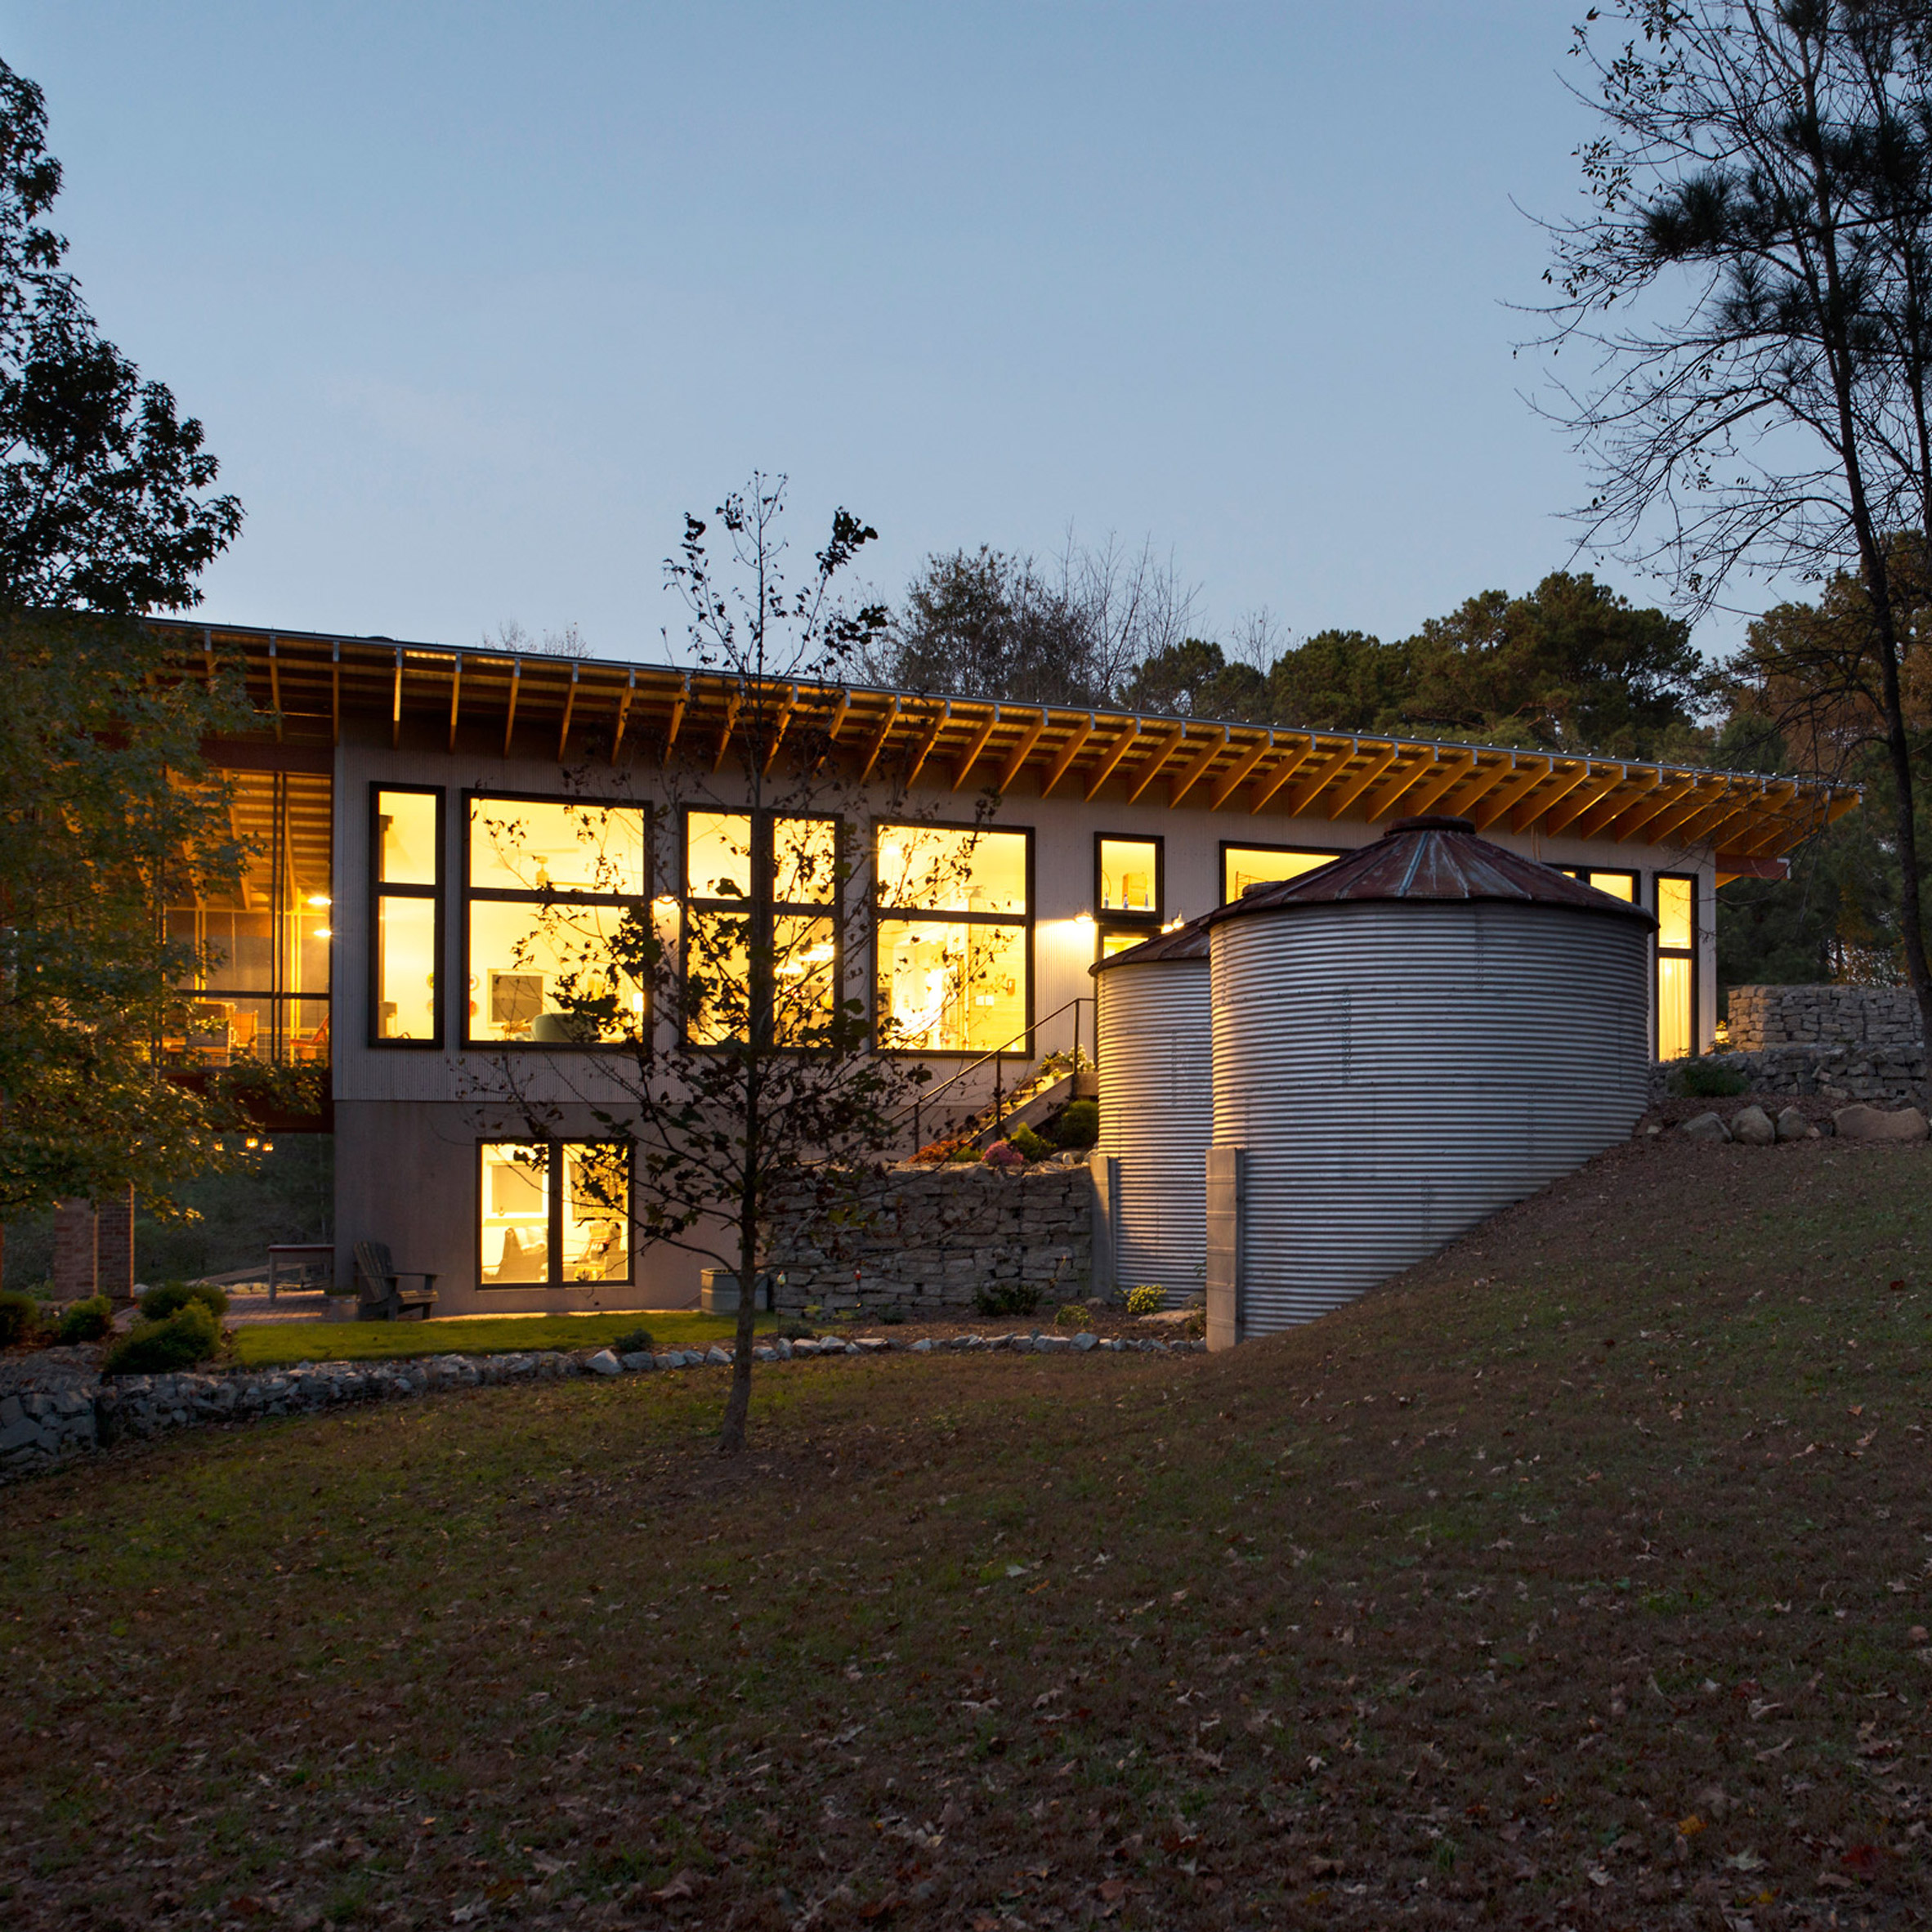 North Carolina Farmhouse By Buildsense Combines Rustic And Modern Features